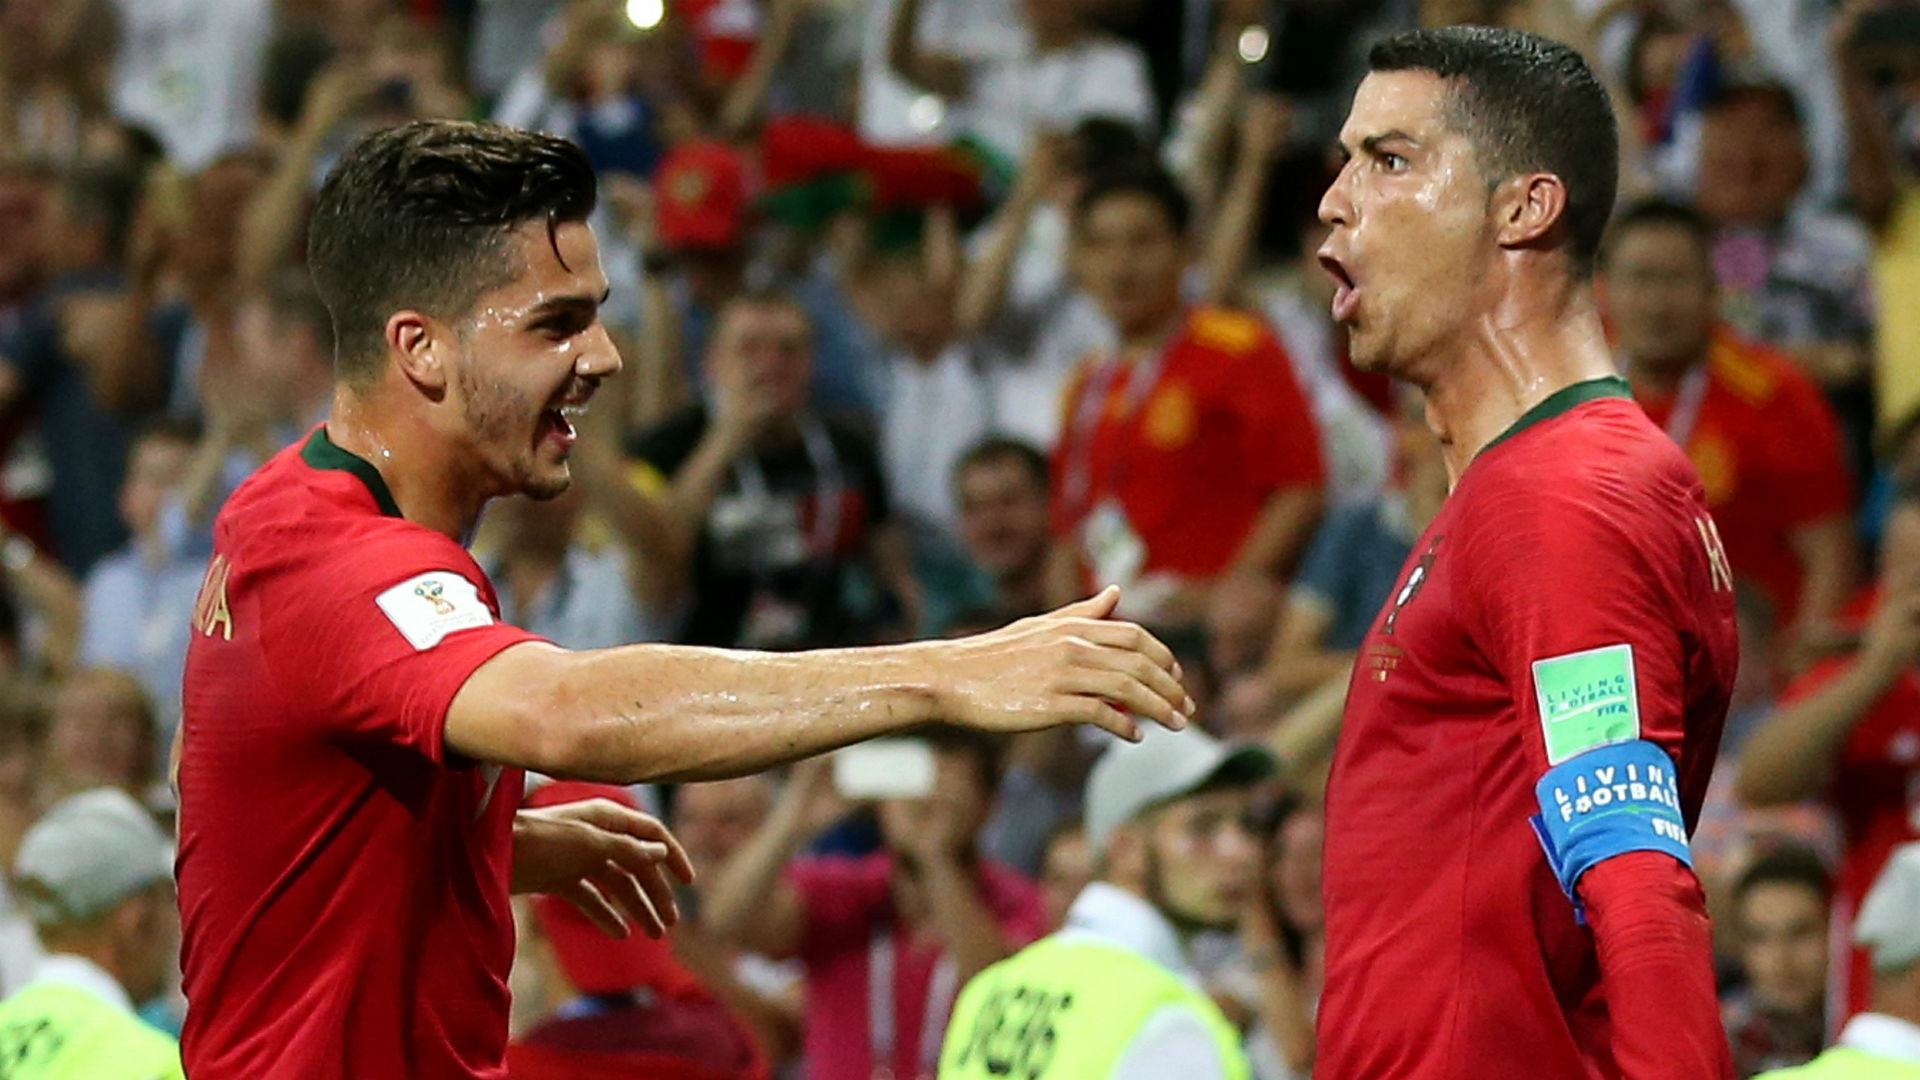 Cristiano Ronaldo scores early in Portugal's win, Morocco eliminated